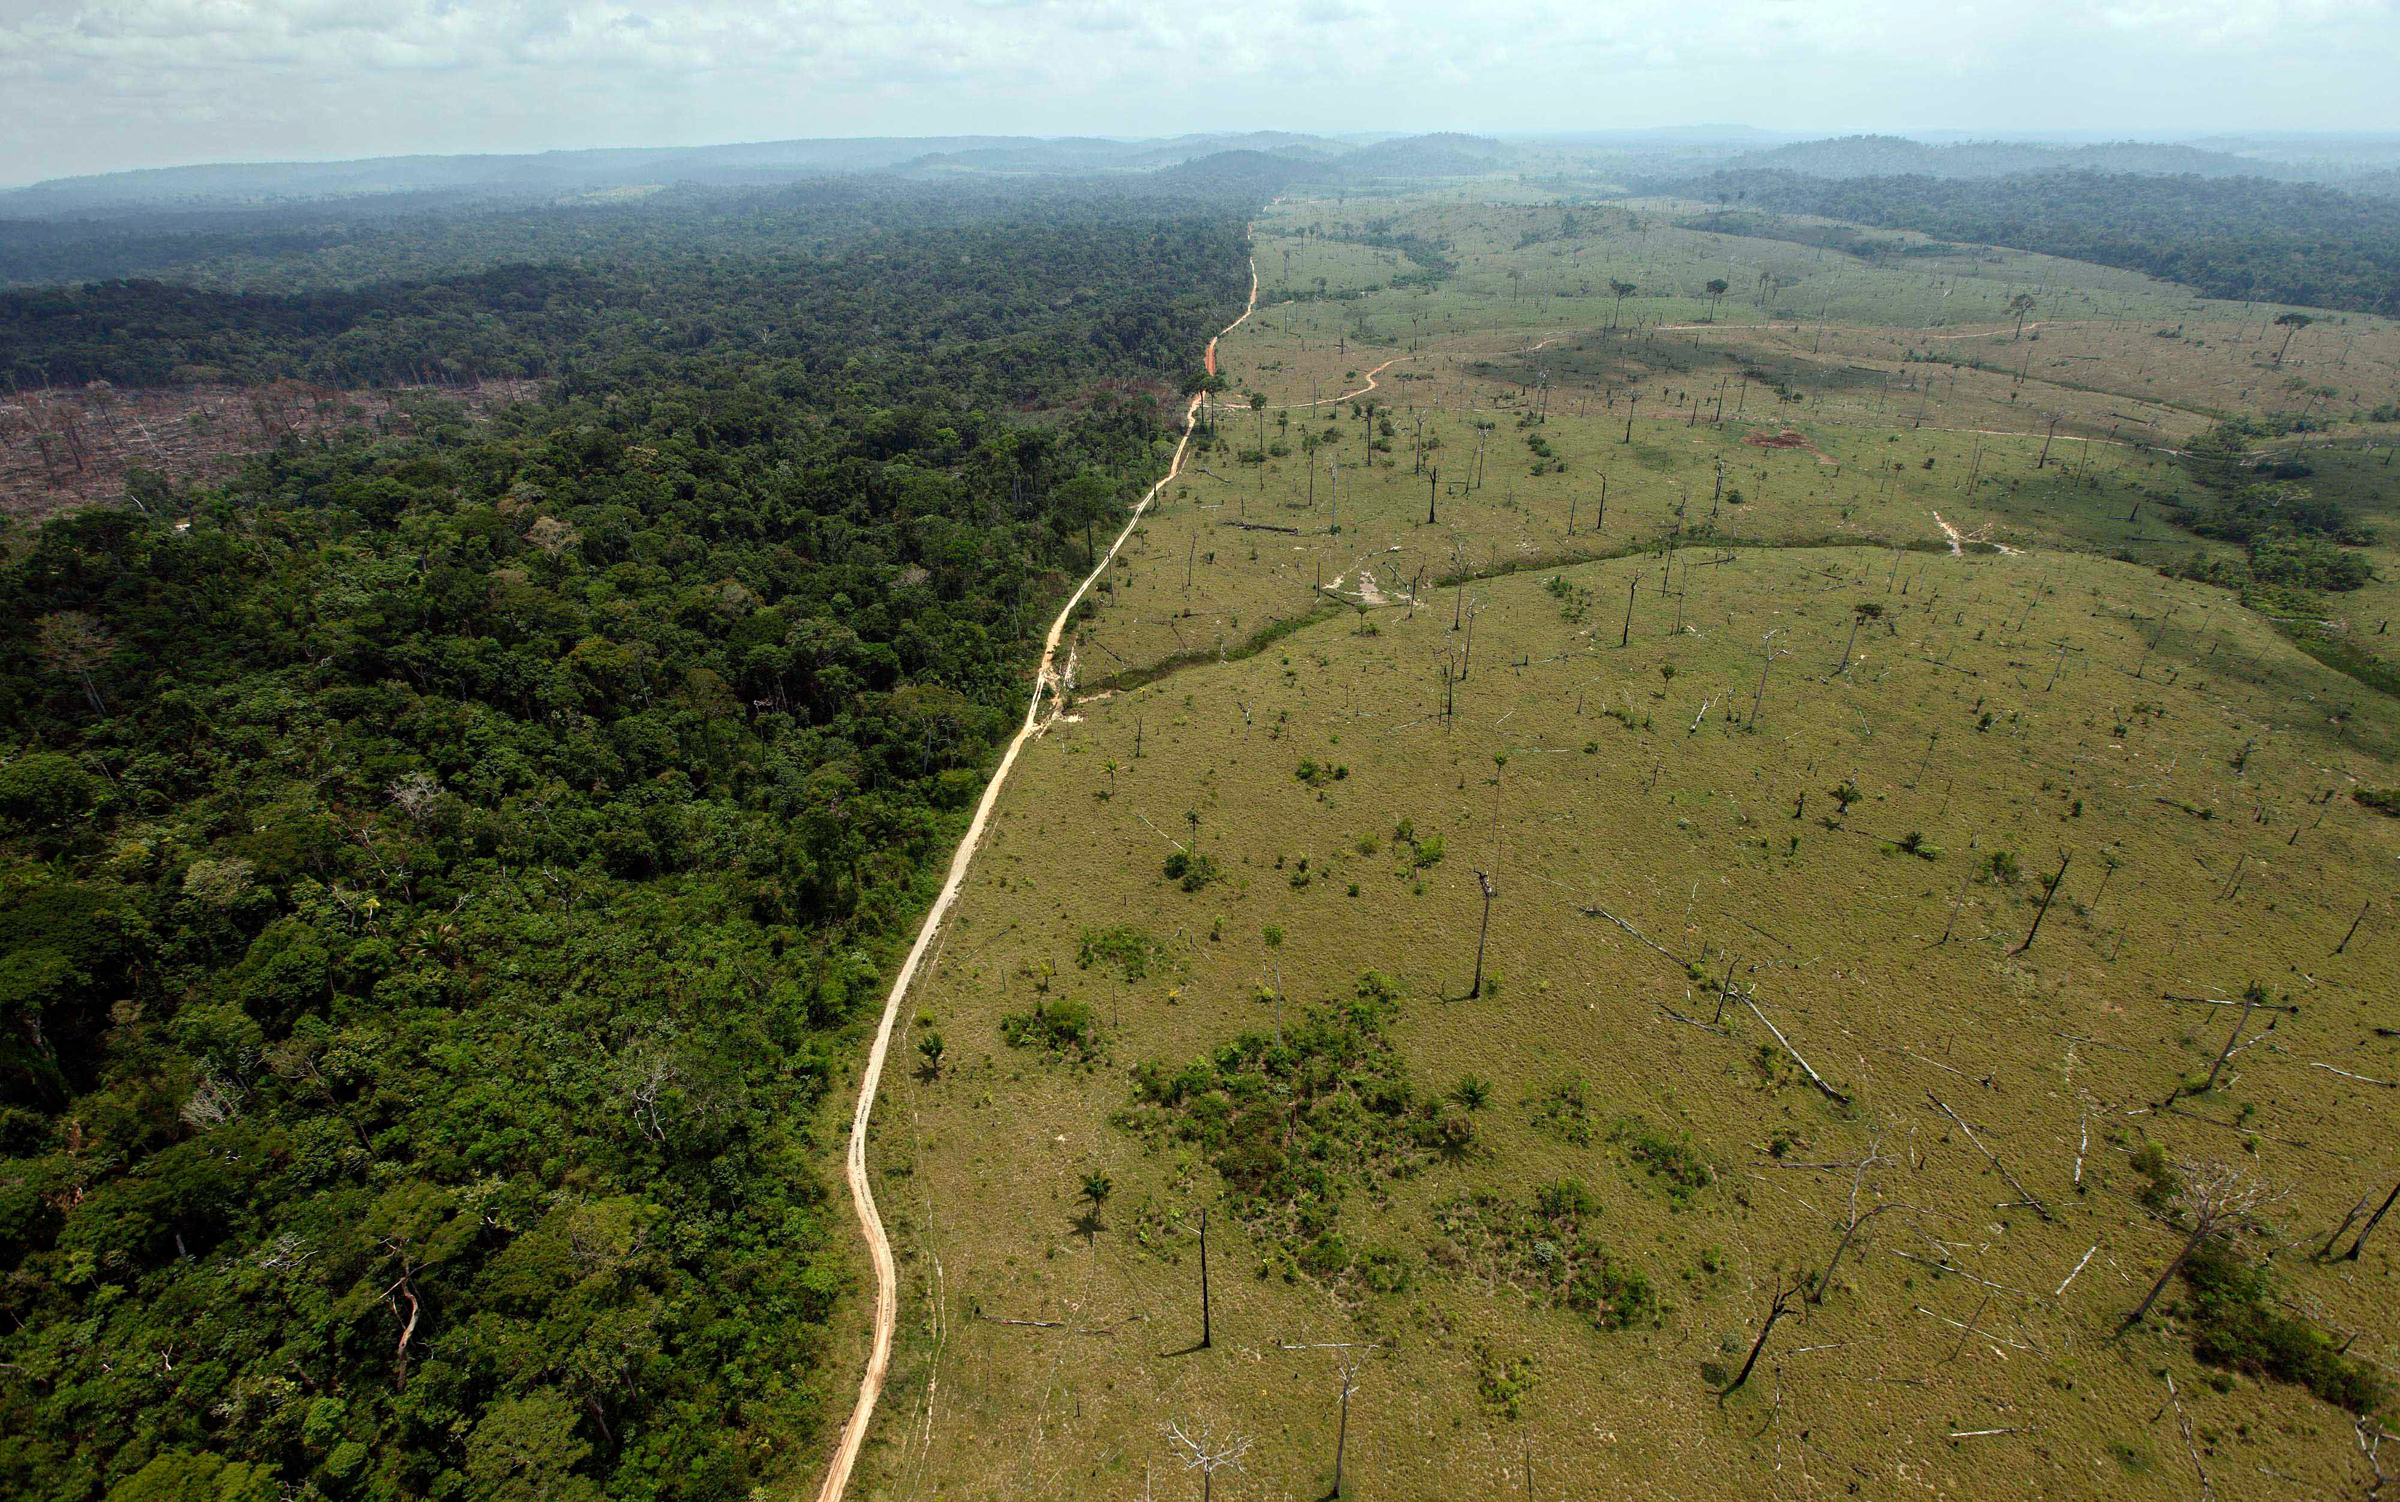 A deforested area near Novo Progresso in Brazil's northern state of Para. Brazil detained a land-grabber in Para state thought to be the Amazon's single biggest deforester, according to the country's environmental protection agency. The Brazilian Institute of Environment and Renewable Natural Resources said Ezequiel Antonio Castanha, detained, operated a network that illegally seized federal lands, clear-cut them and sold them to cattle grazersBrazil Amazon Deforestation, Novo Progresso, Brazil